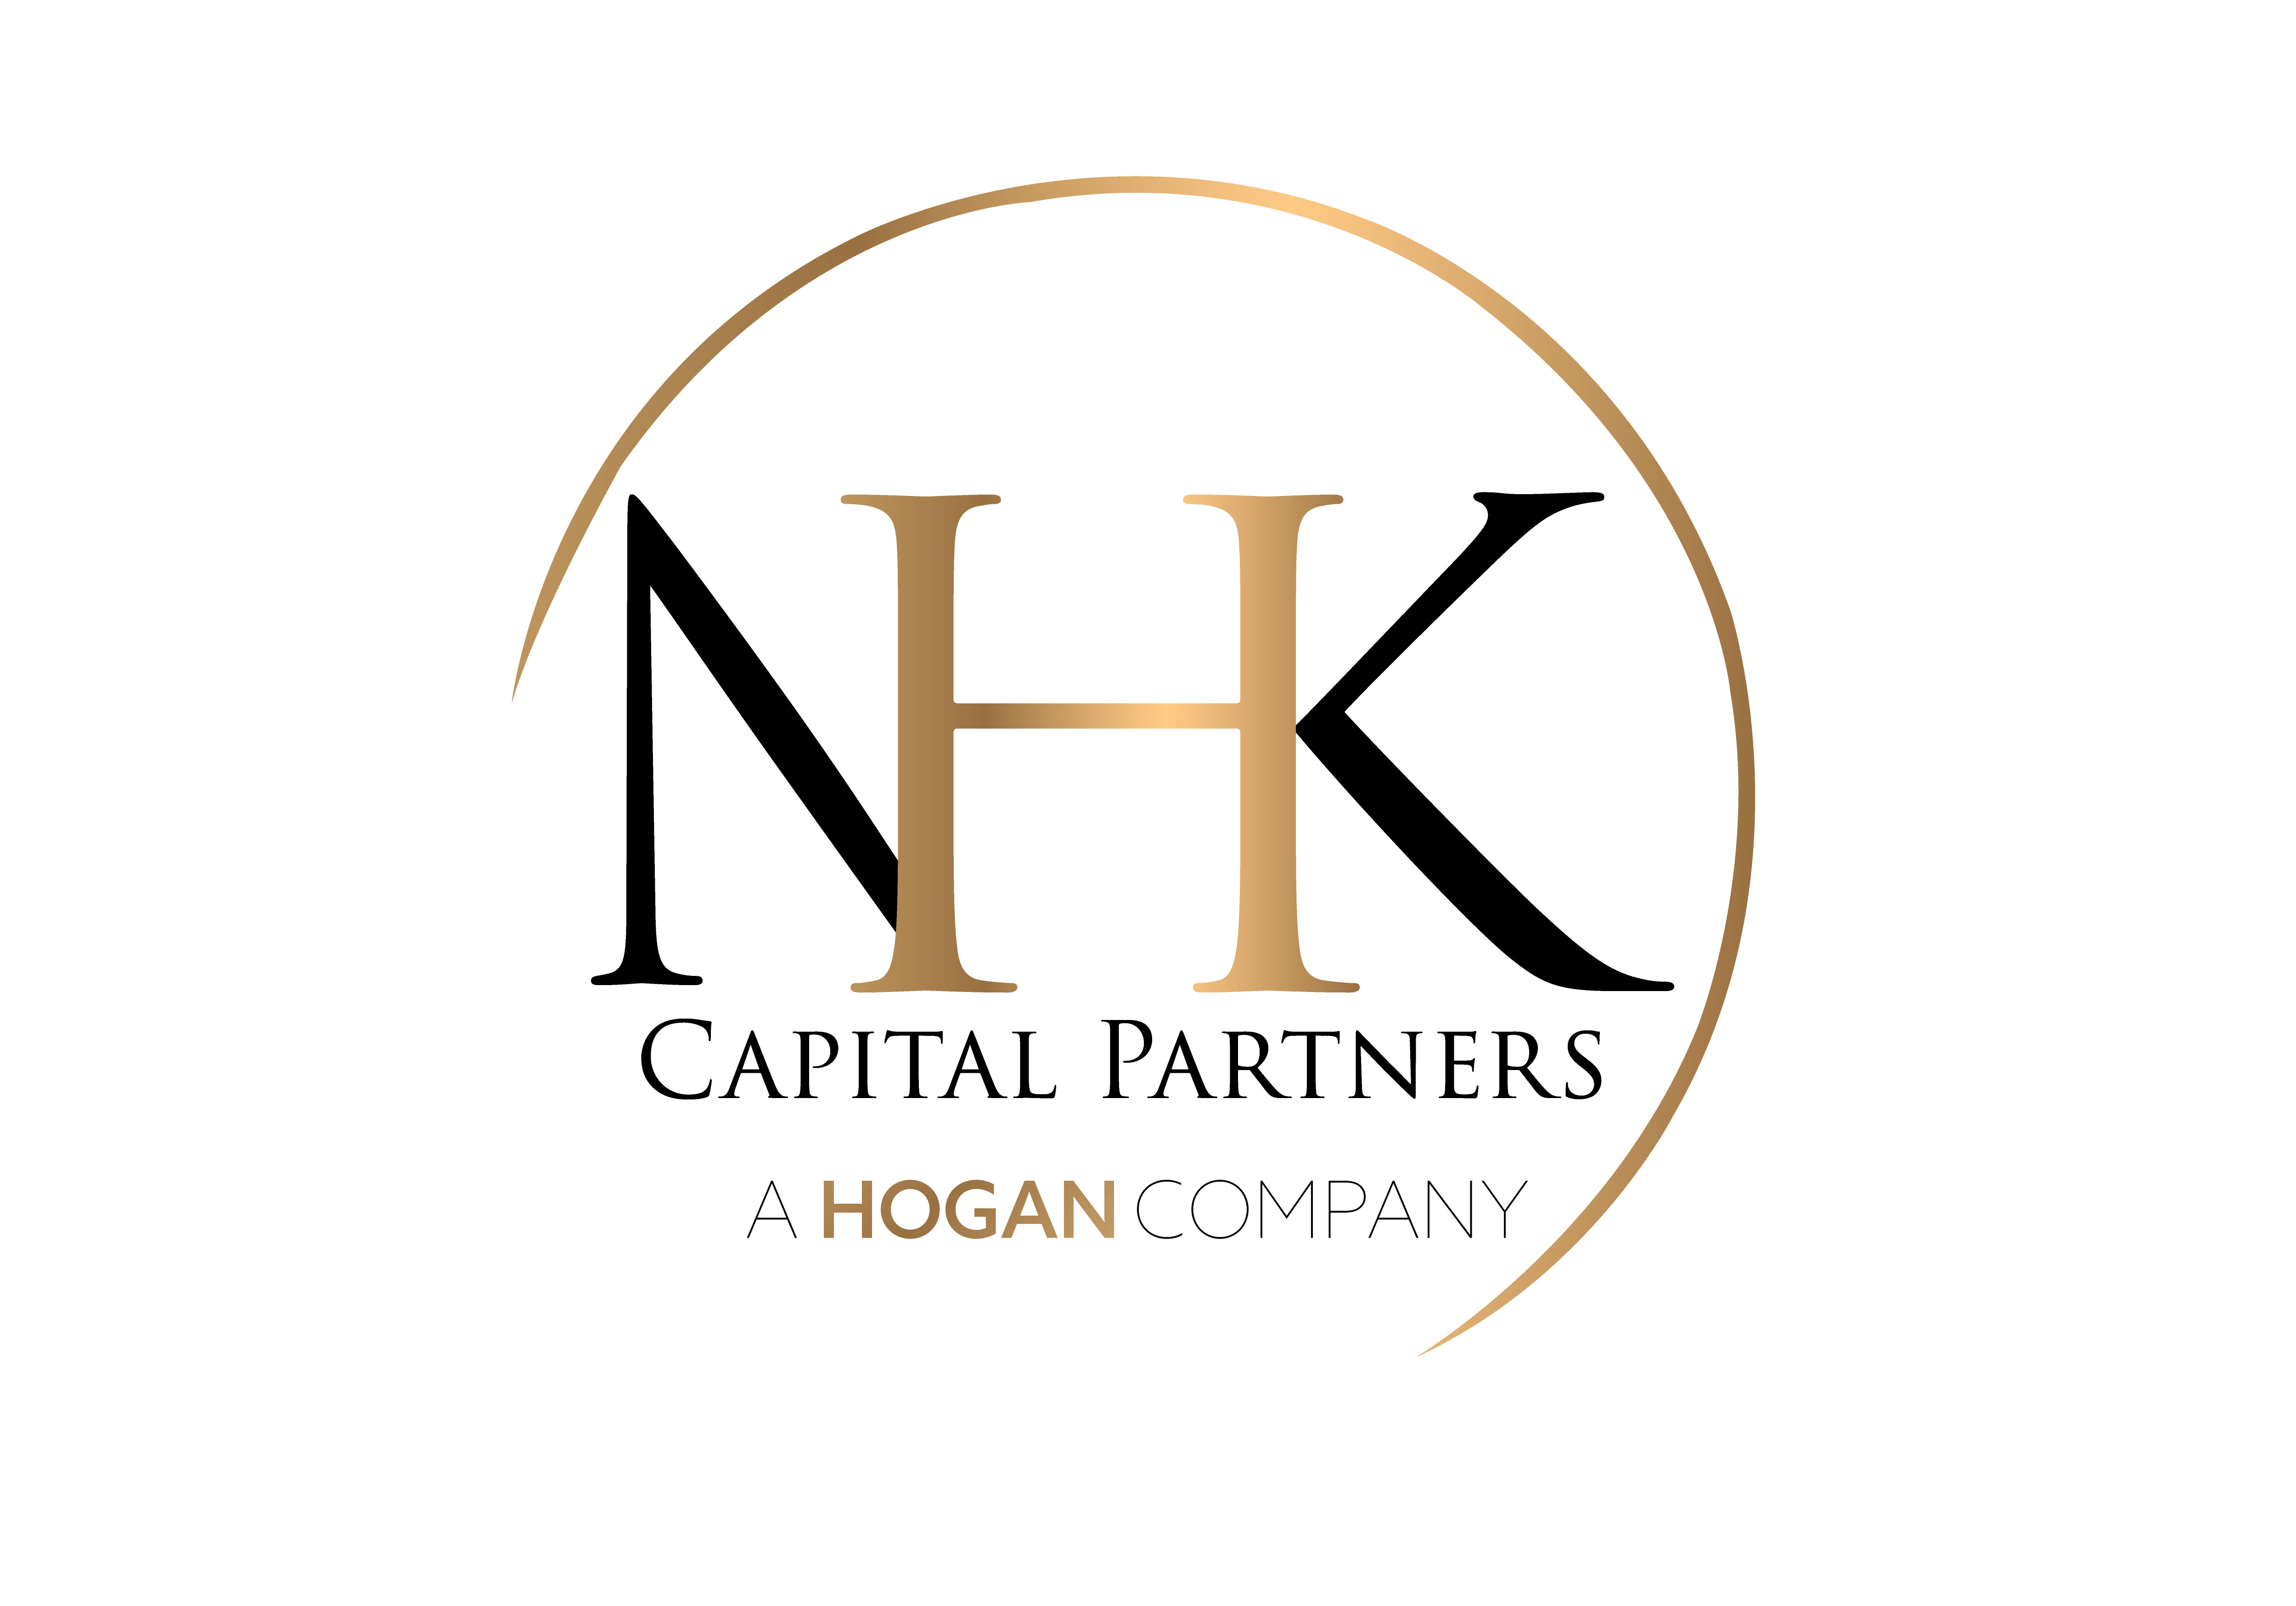 CMB, a Hogan Company, Announces New Alternative Investment Company, NHK Capital Partners